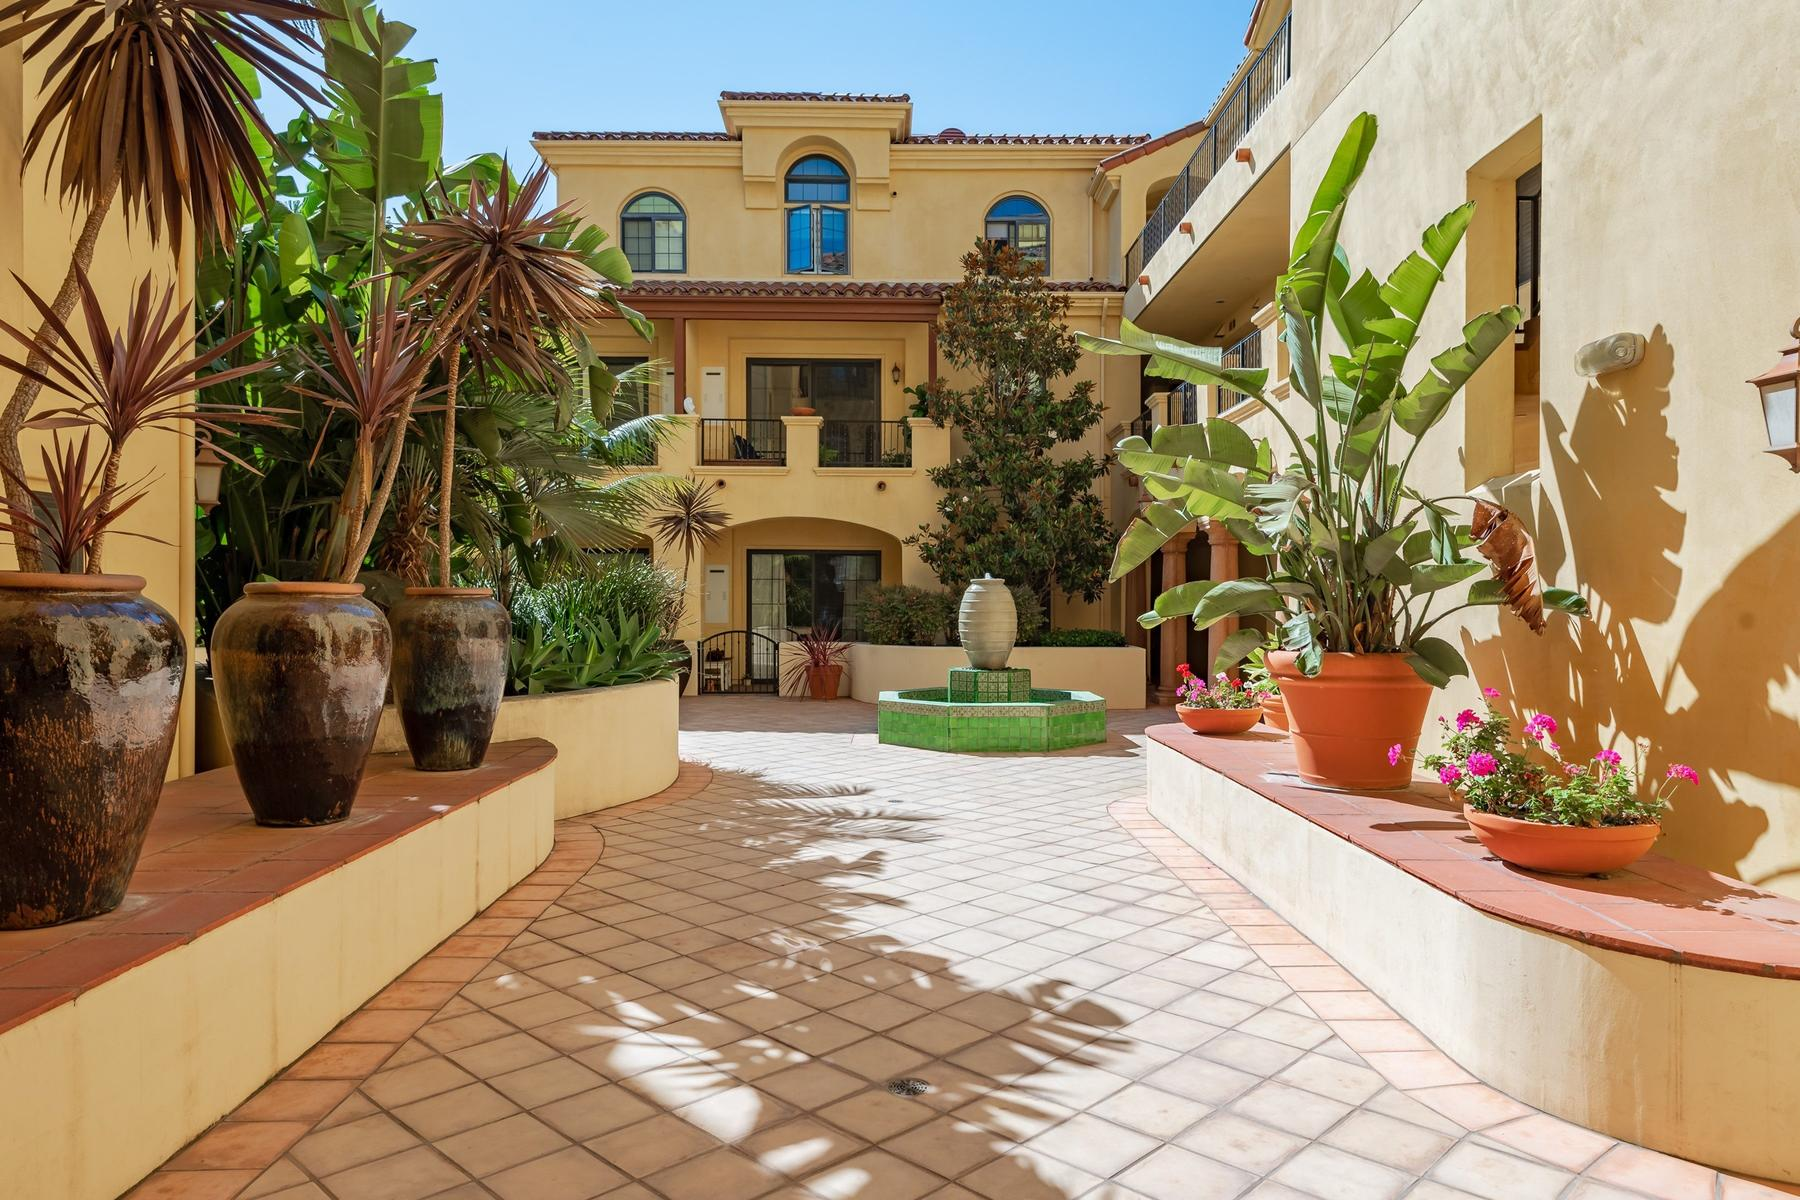 Condominiums for Sale at The Cannery 130 N. Garden Street Unit 1409 Ventura, California 93001 United States